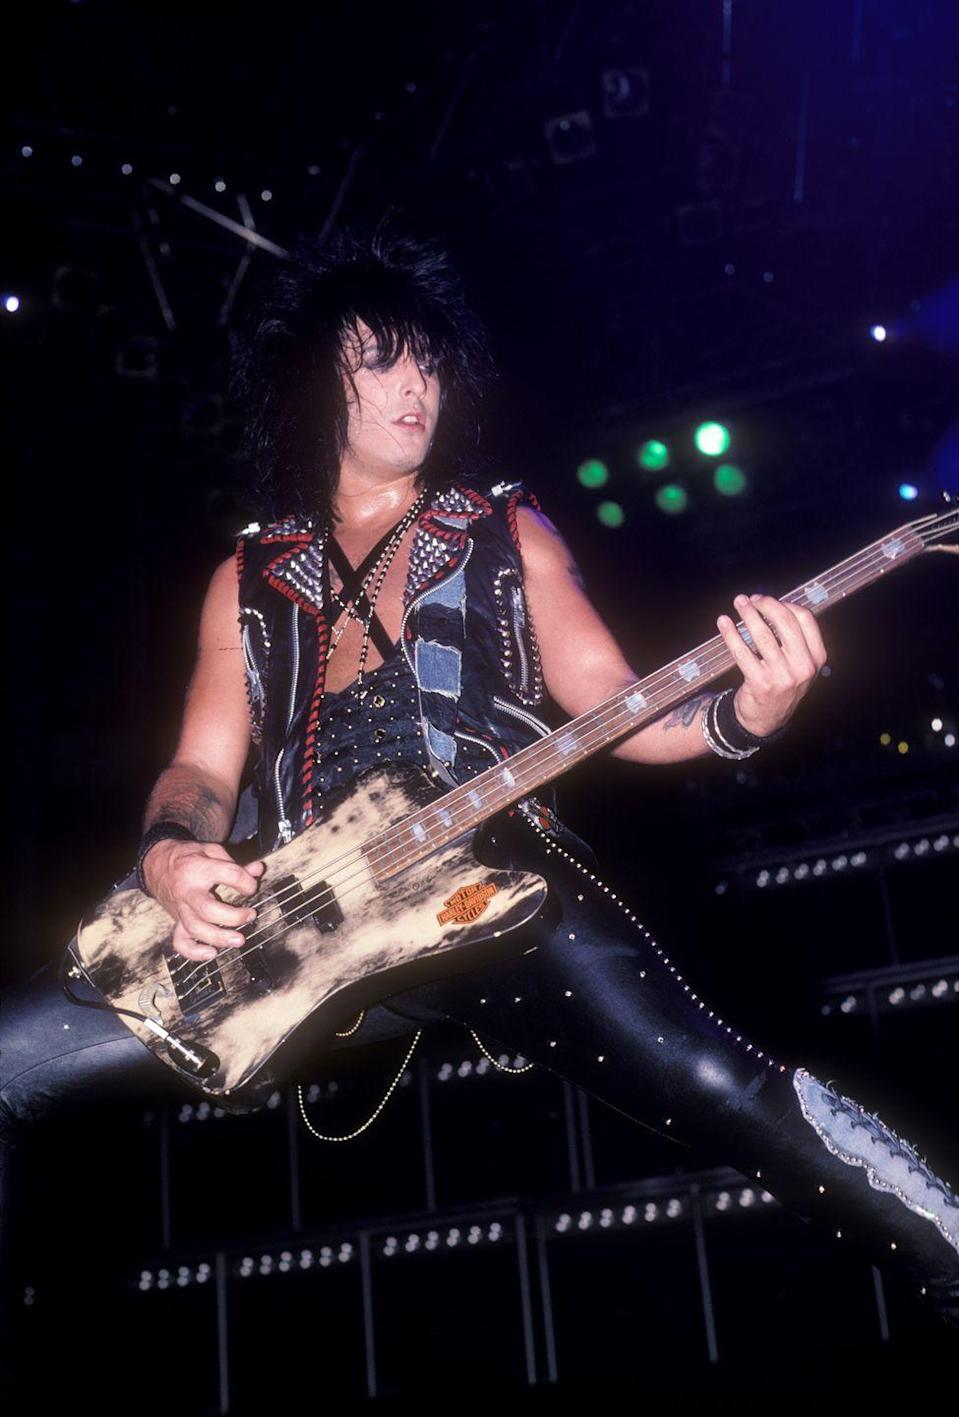 "<p>The Mötley Crüe bassist and songwriter overdosed on heroine in 1987 and had an out of body experience. He wrote in <em><a href=""https://www.amazon.com/Dirt-Confessions-Worlds-Most-Notorious/dp/0060989157?tag=syn-yahoo-20&ascsubtag=%5Bartid%7C2141.g.36311064%5Bsrc%7Cyahoo-us"" rel=""nofollow noopener"" target=""_blank"" data-ylk=""slk:The Dirt: Confessions of the World's Most Notorious Rock Band"" class=""link rapid-noclick-resp"">The Dirt: Confessions of the World's Most Notorious Rock Band</a></em>, ""I tried to sit up to figure out what was going on. I thought it would be hard to lift my body. But to my surprise, I shot upright, as if I weighed nothing. Then it felt as if something very gentle was grabbing my head and pulling me upward. Above me, everything was bright white. I looked down and realized I had left my body. Nikki Sixx—or the filthy, tattooed container that had once held him—was lying covered face-to-toe with a sheet on a gurney being pushed by medics into an ambulance.""</p>"